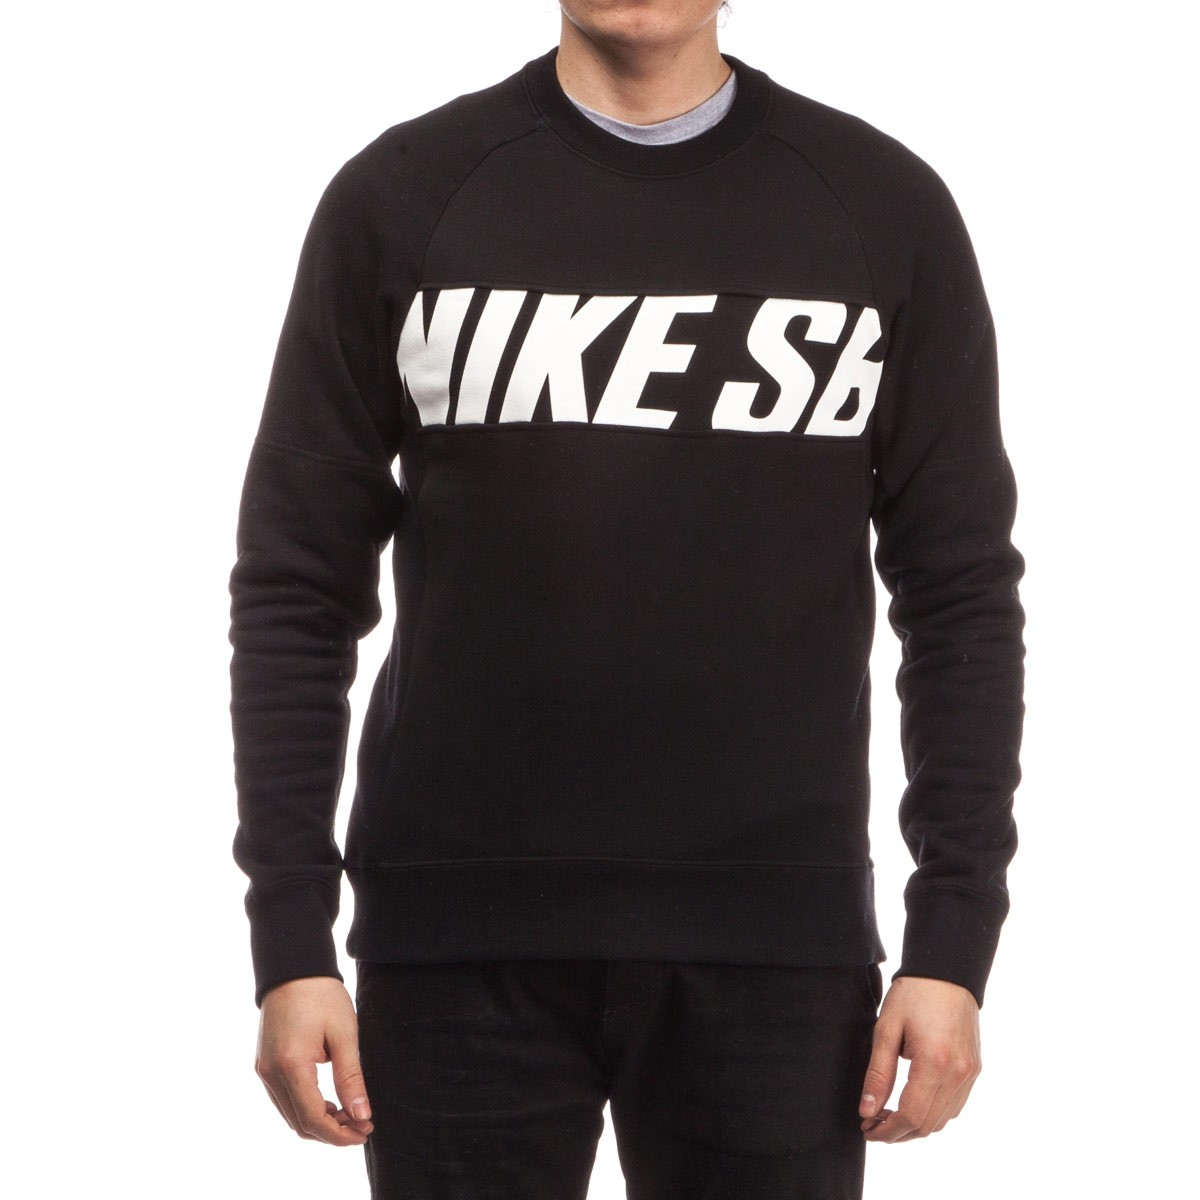 Nike Sb Everett Motion Crew Sweatshirt Black White